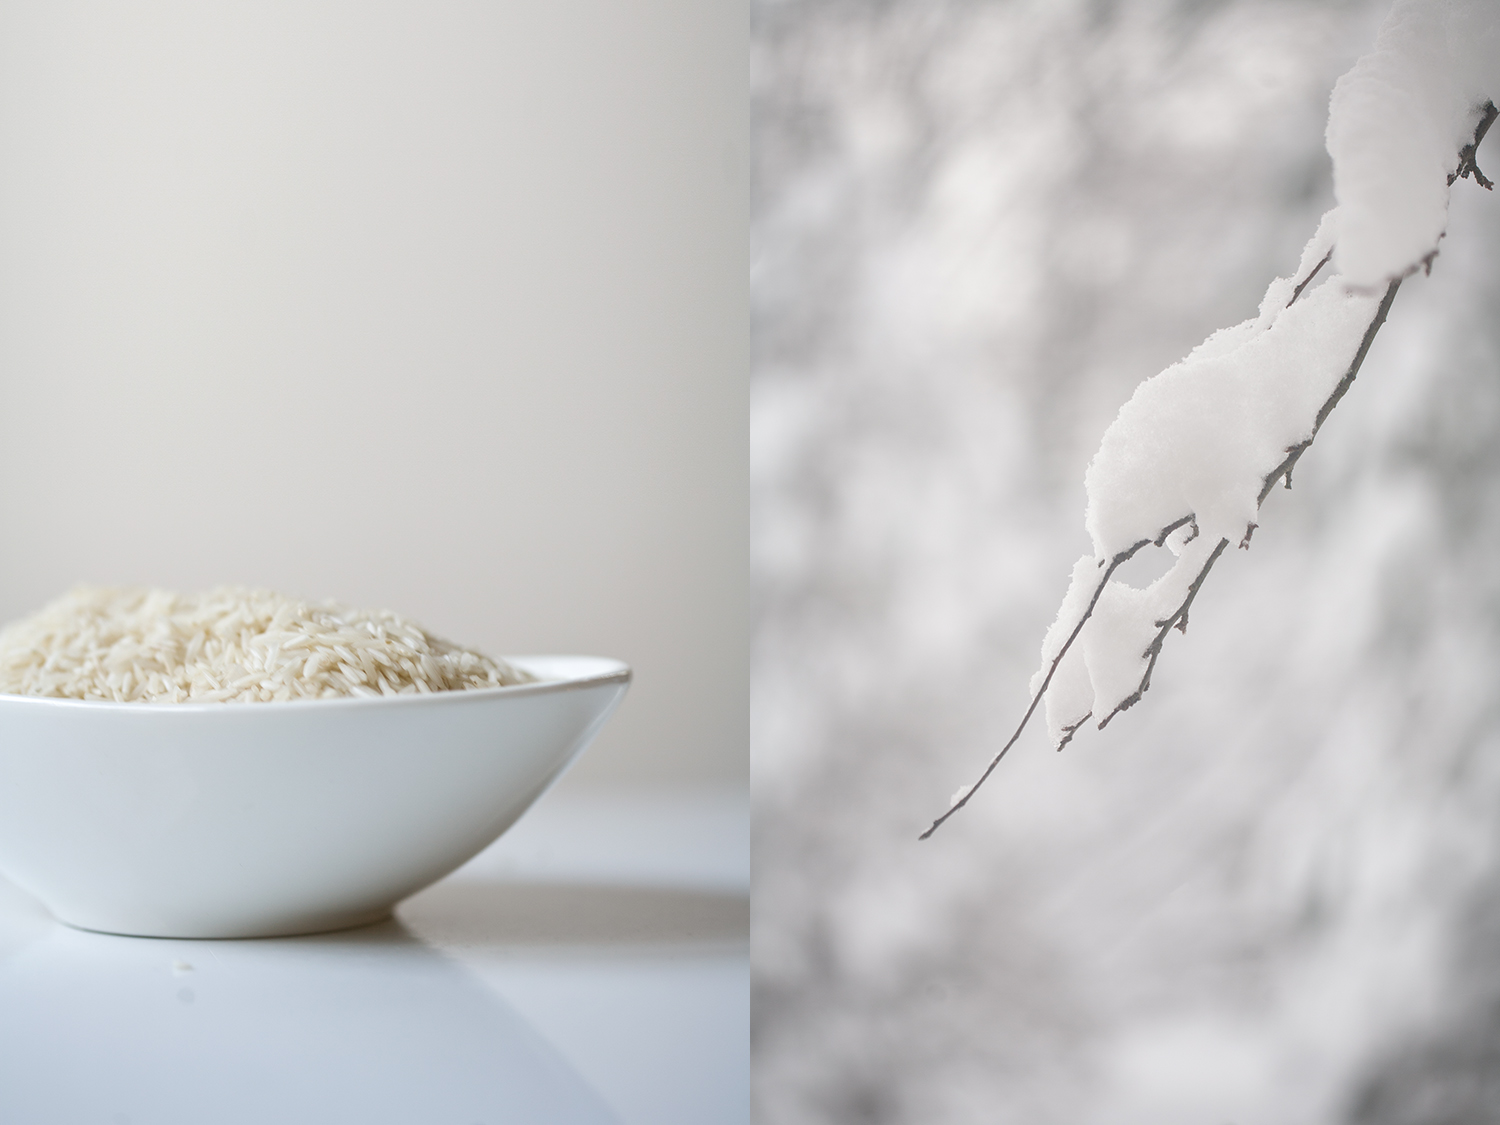 snowy landscape and jasmine rice